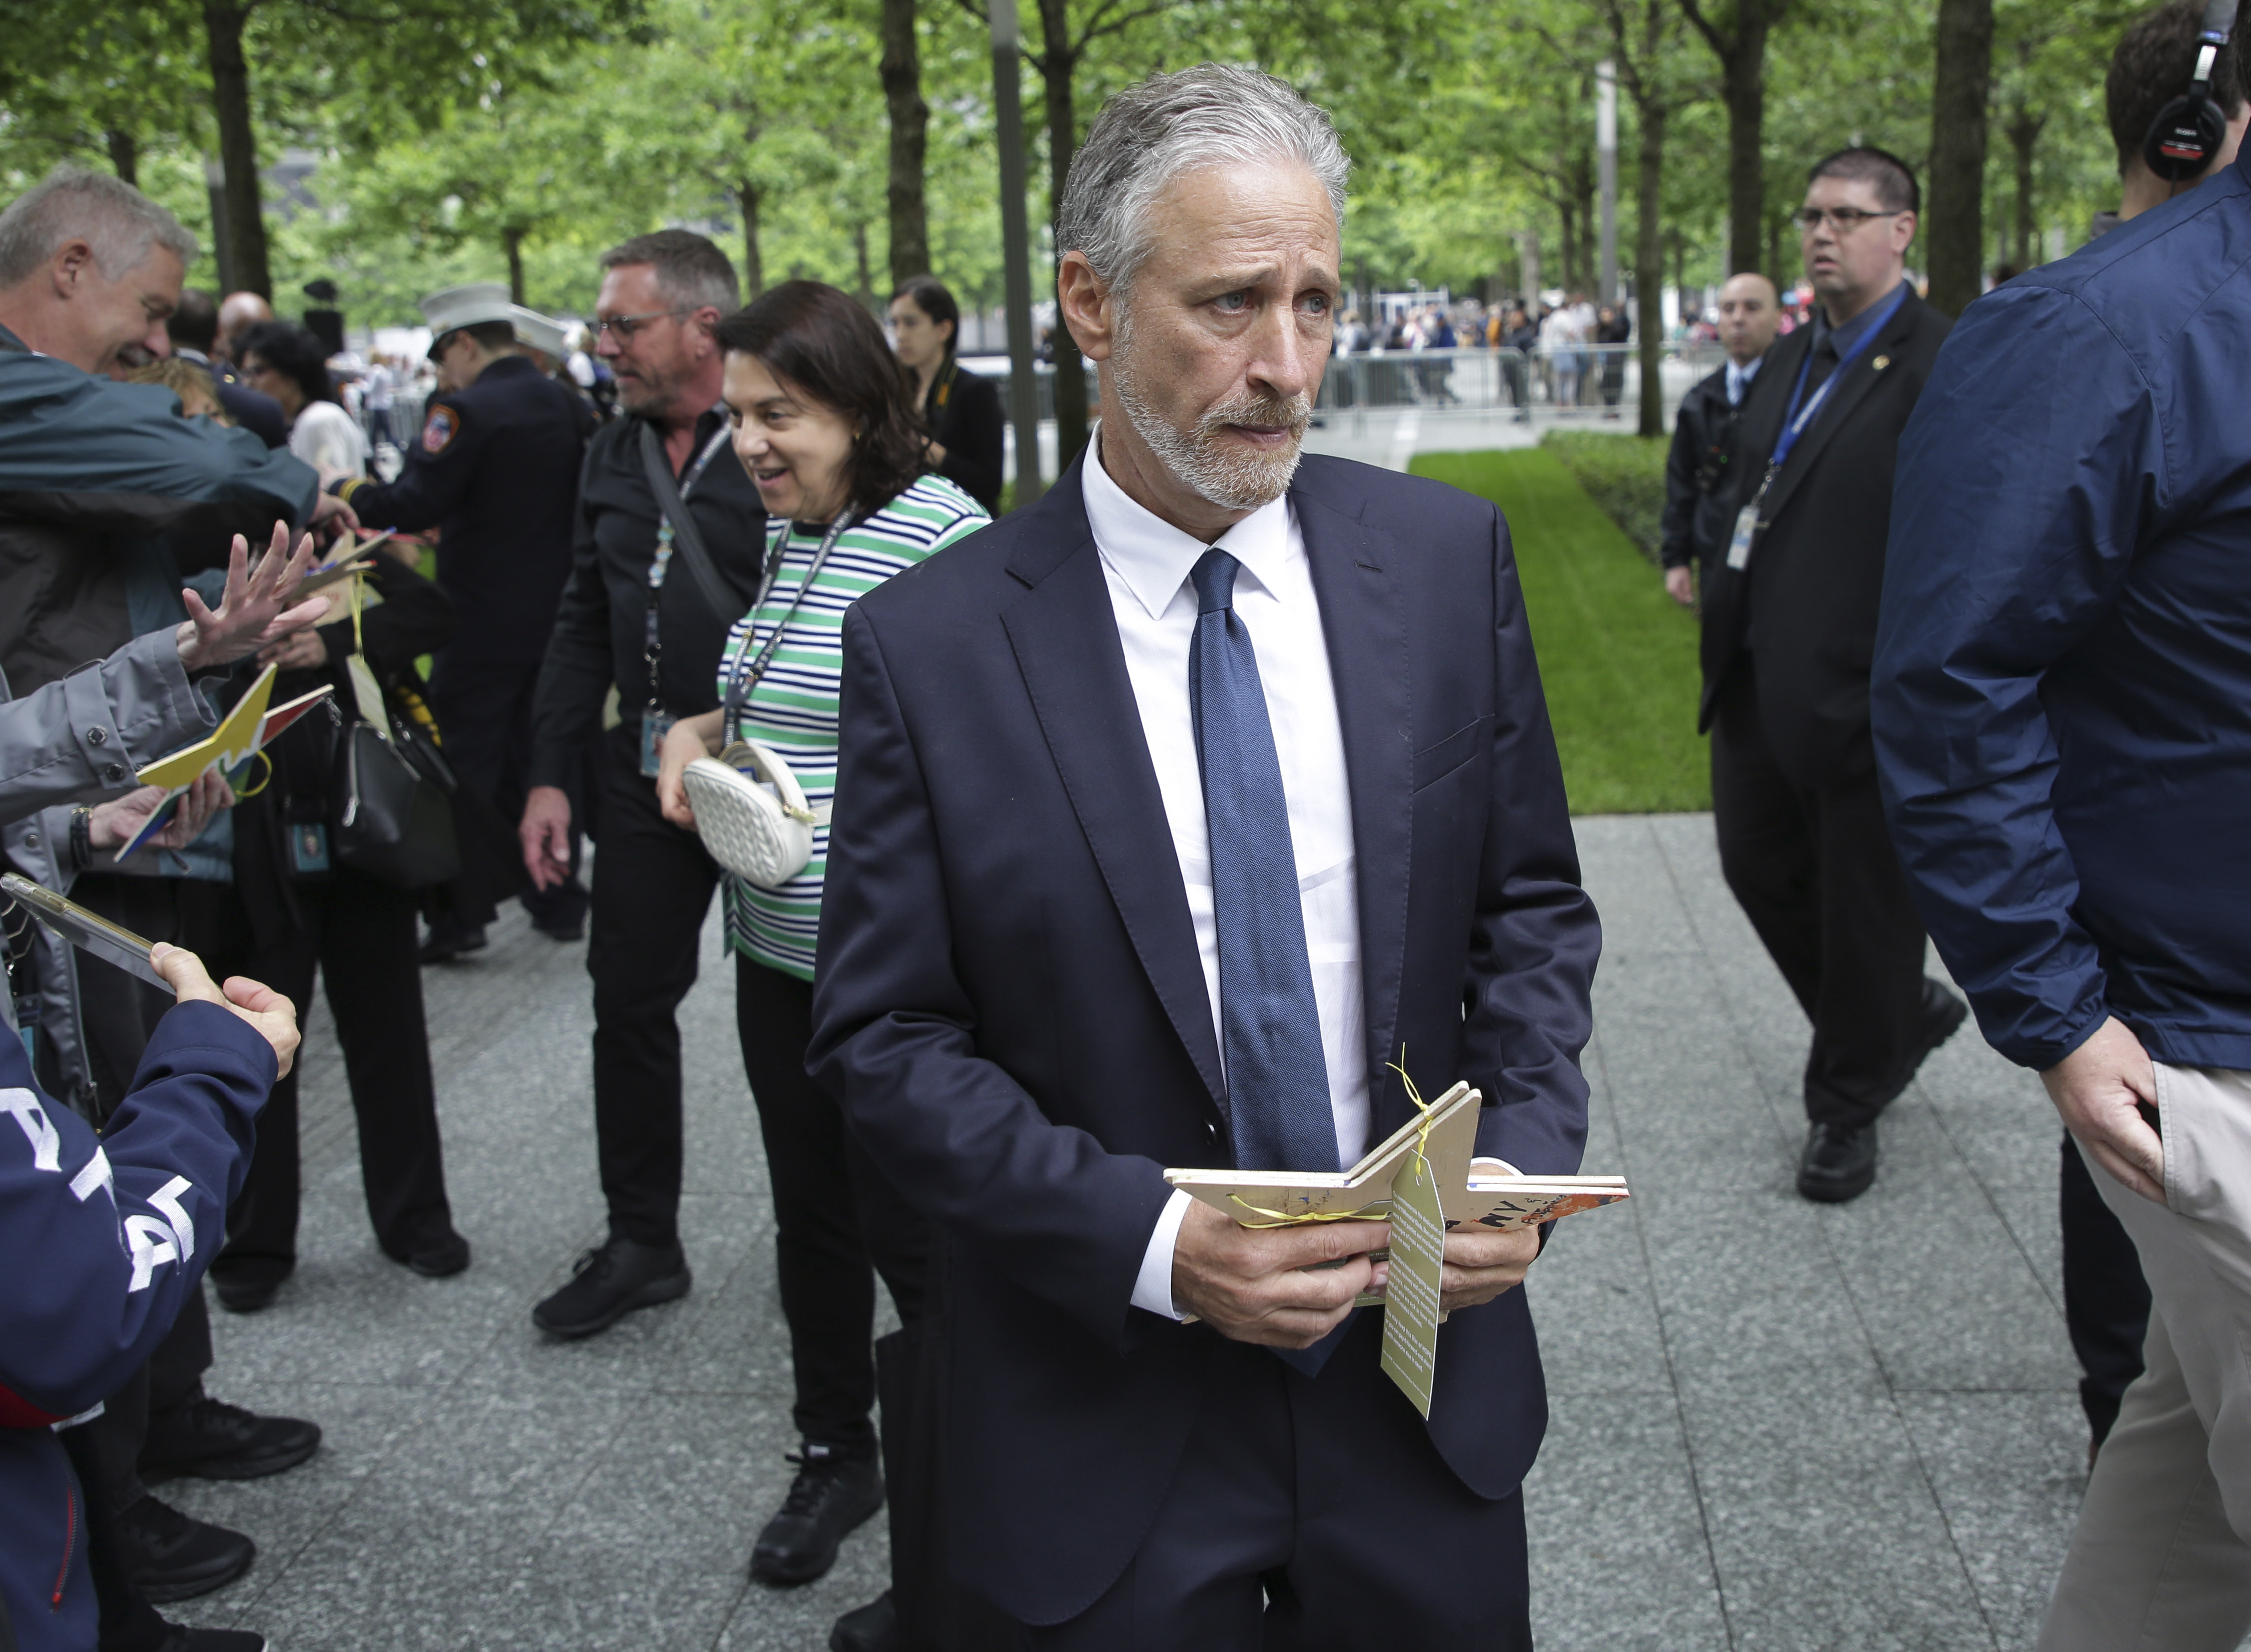 John Stewart rebukes Congress in 9/11 victims hearing: 'They did their jobs... do yours!'